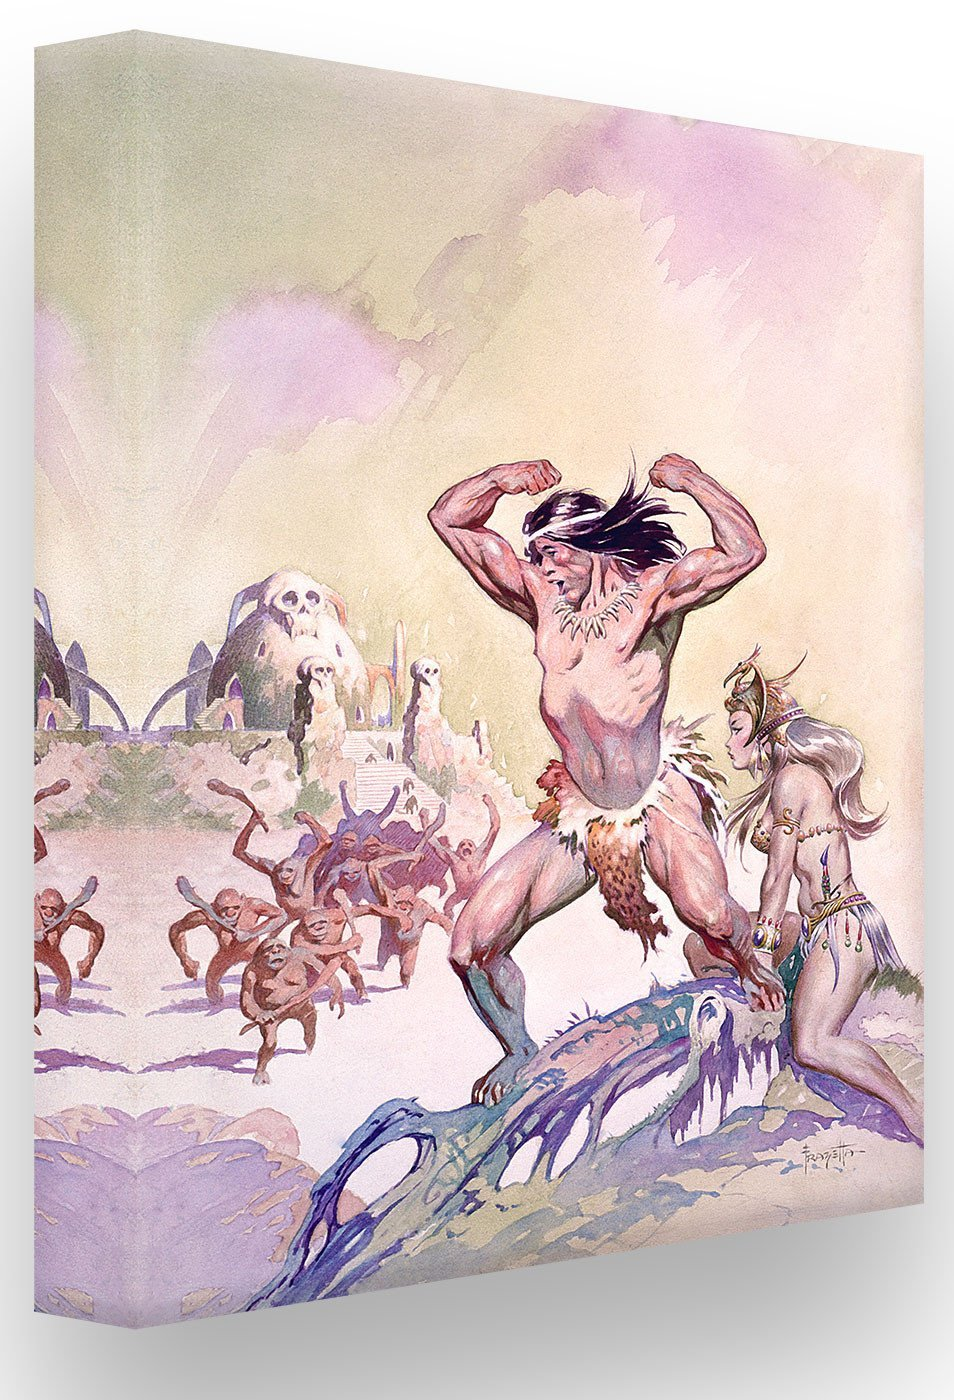 FrazettaGirls Art Print 18 x 24 - Canvas Stretched on Wooden Bars Tarzan #1 Print